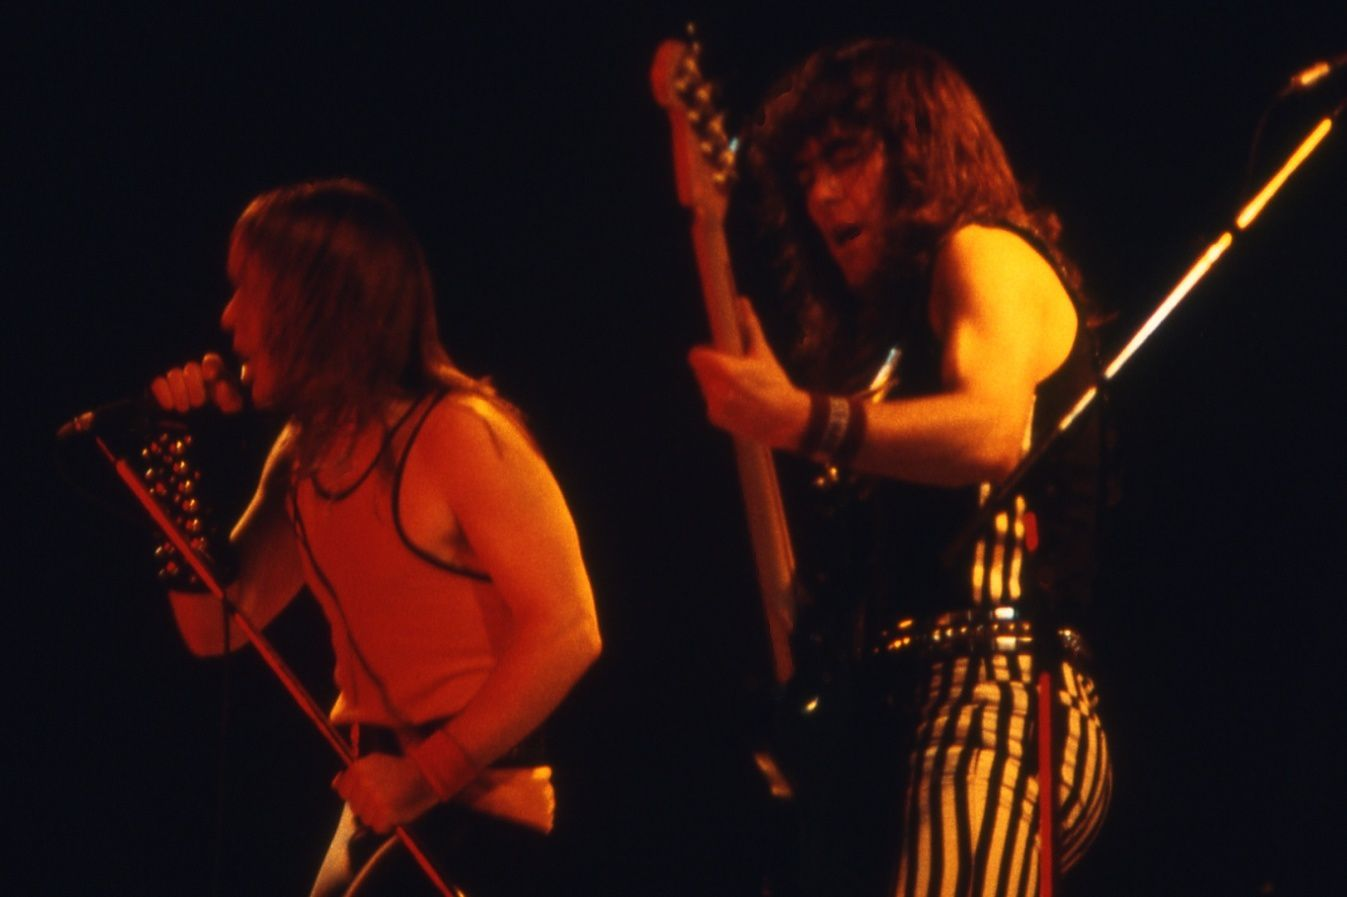 Steve Harris and Bruce Dickinson (Iron Maiden) on stage in Spain